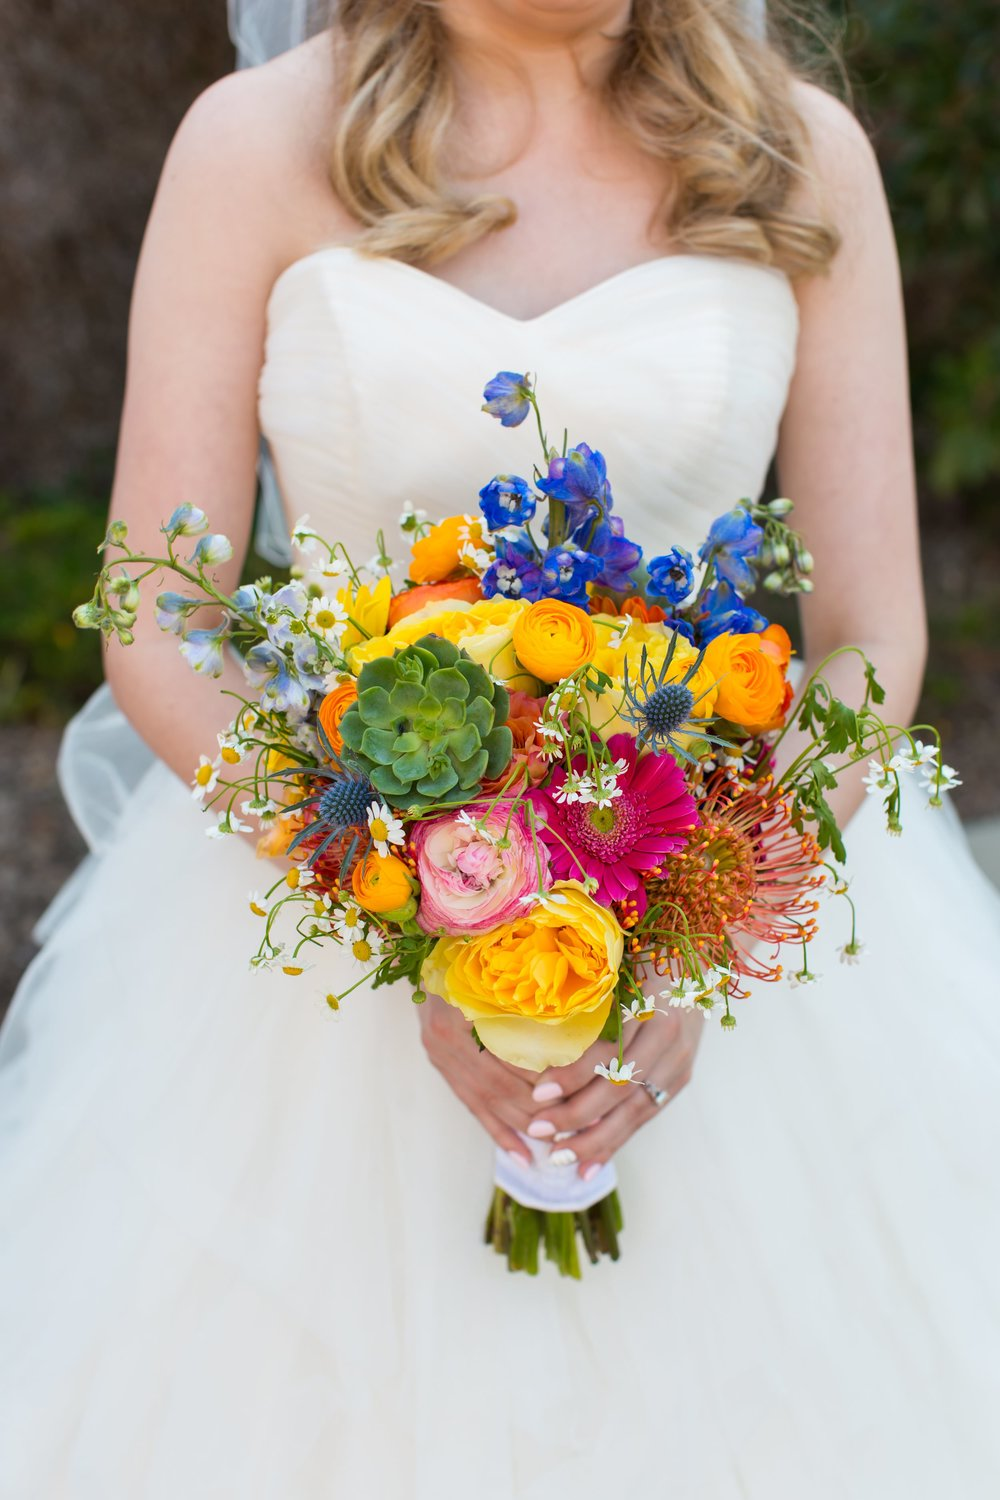 I absolutely adore Noelle's funky, vibrant bridal bouquet by  Lagrange wedding florist Sweet Pea Floral Designs . The design is fresh and fun, and it coordinated perfectly with her bridesmaid's yellow dresses! To view more from Kevin and Noelle's  Glendalough Manor wedding, click here .